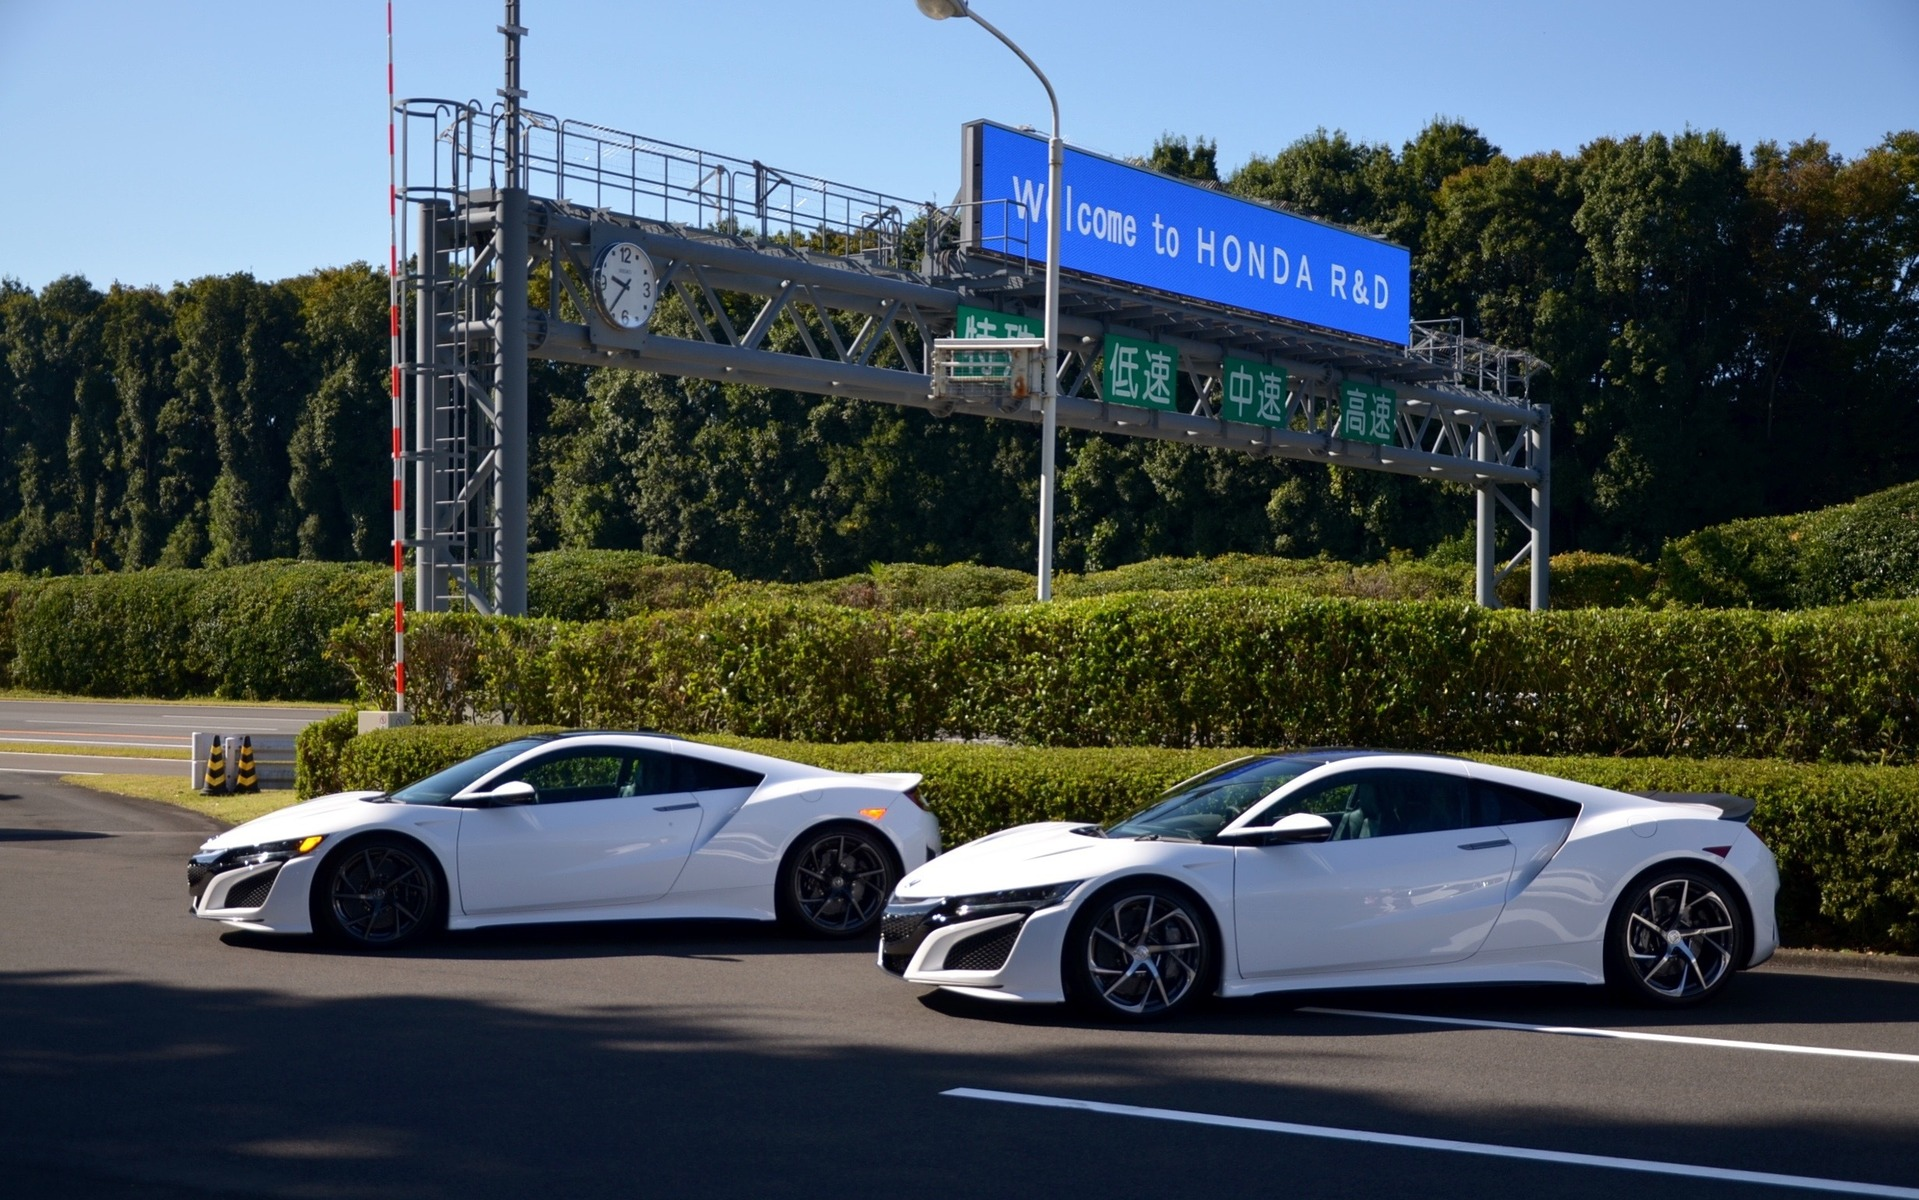 Acura Exotic Car >> 2017 Acura NSX: More Cerebral Than Visceral - The Car Guide